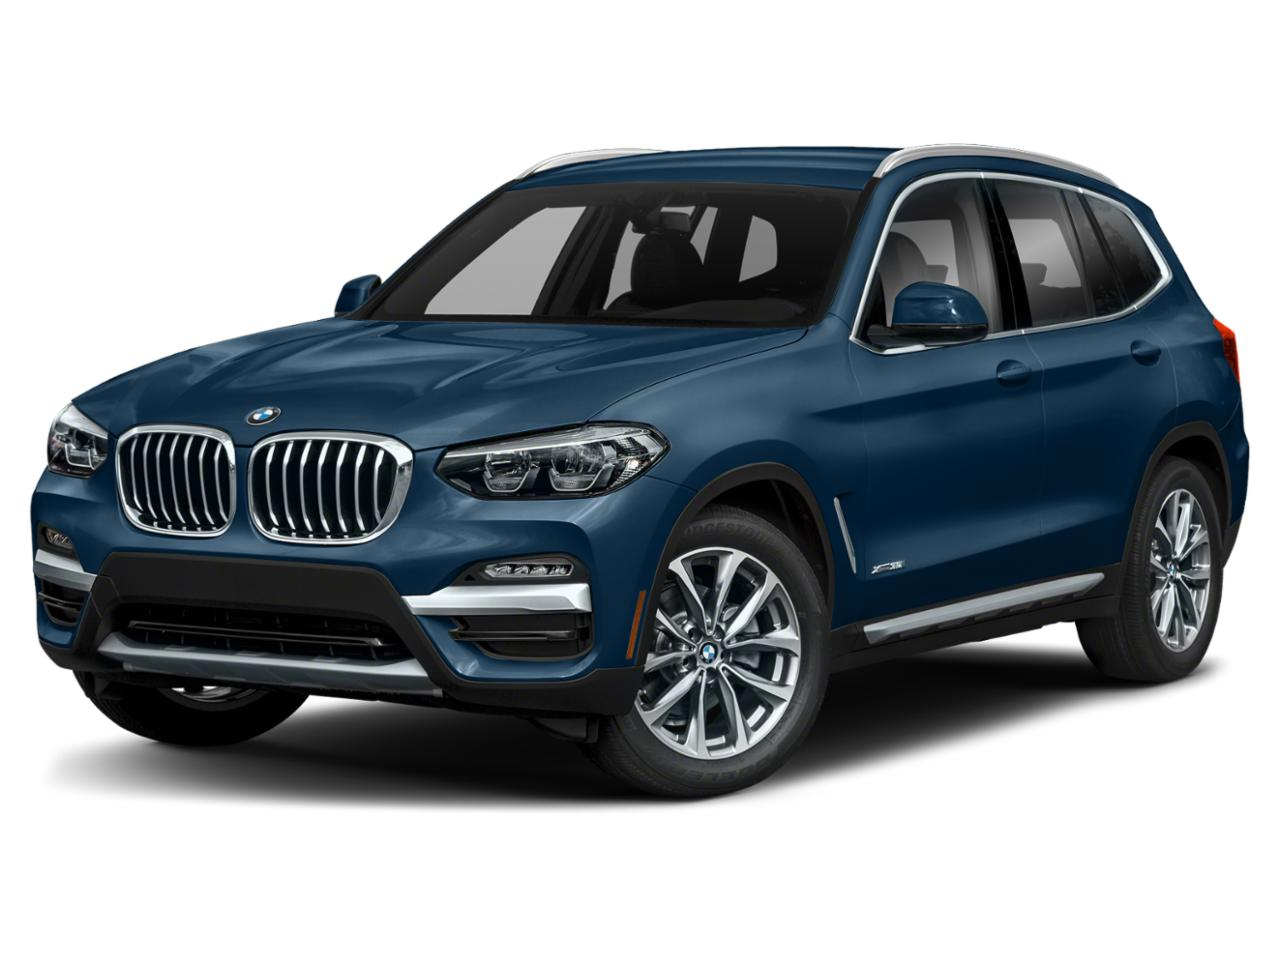 2018 BMW X3 M40i Vehicle Photo in Pleasanton, CA 94588